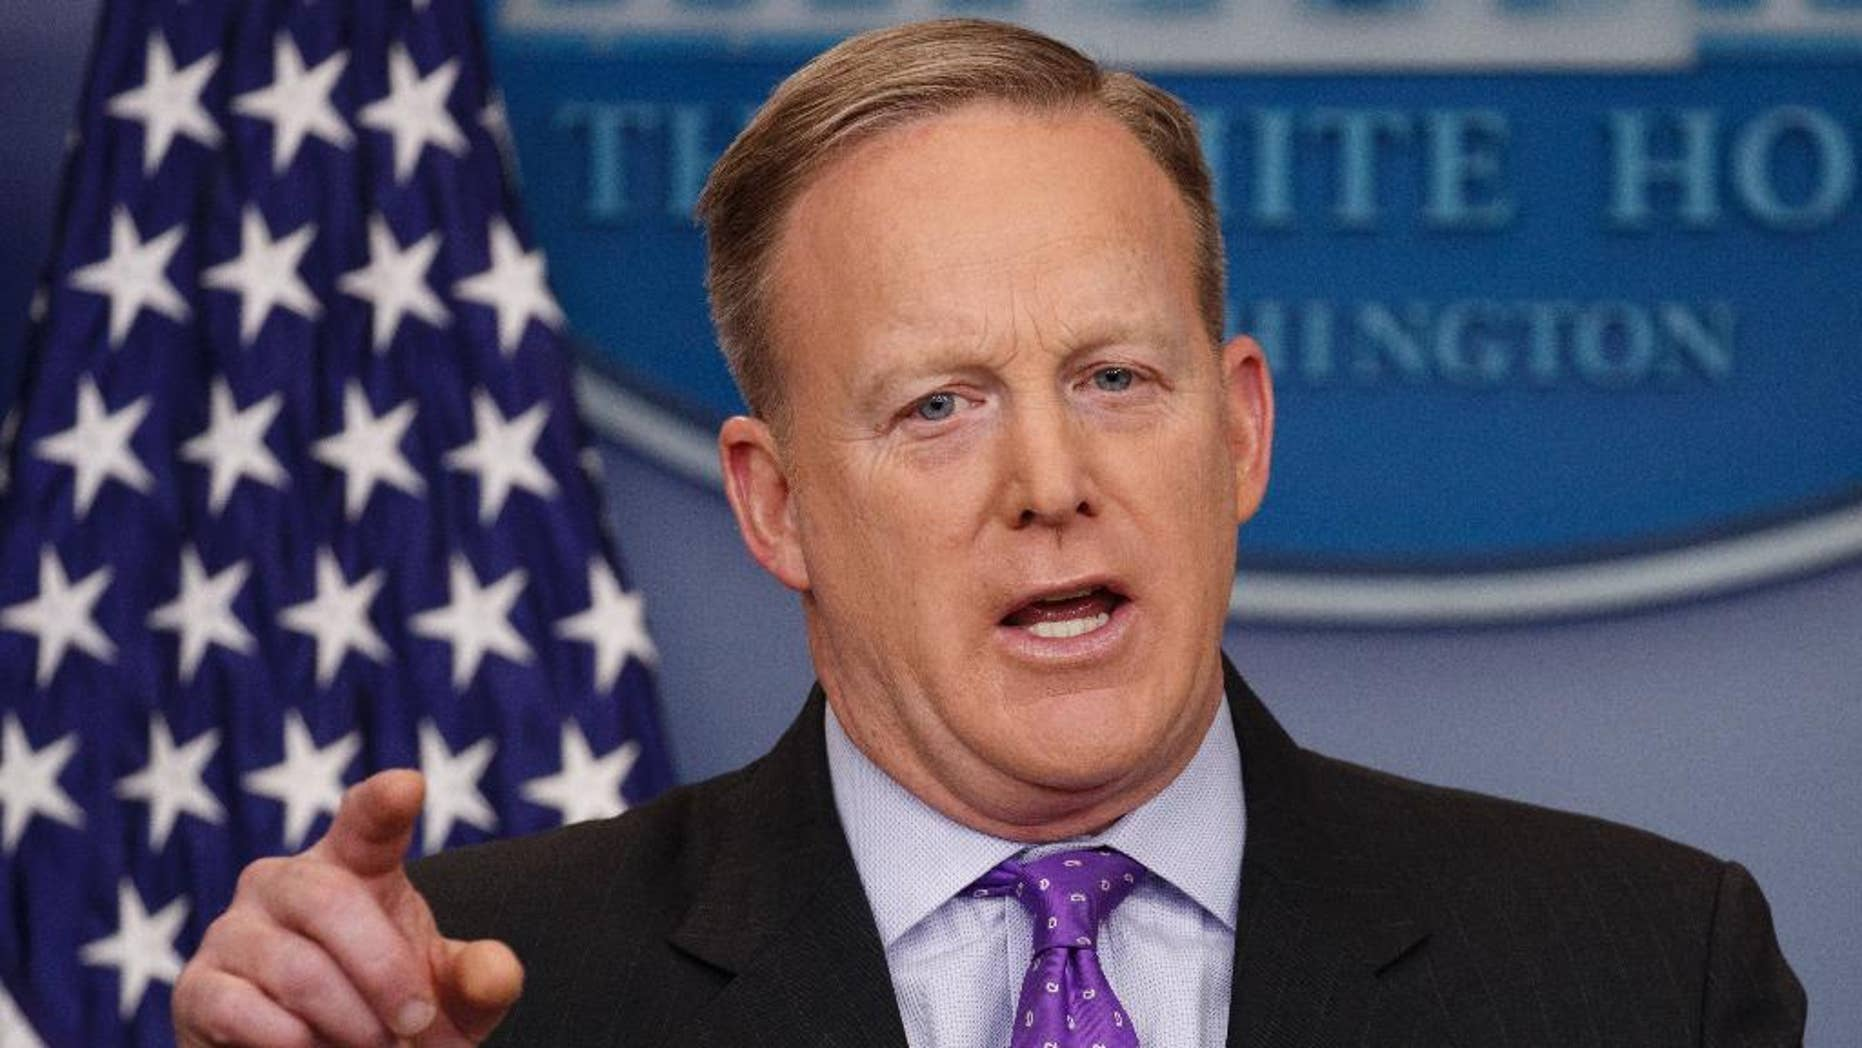 White House press secretary Sean Spicer speaks during the daily press briefing, Wednesday, Feb. 8, 2017, at the White House in Washington. (AP Photo/Evan Vucci)